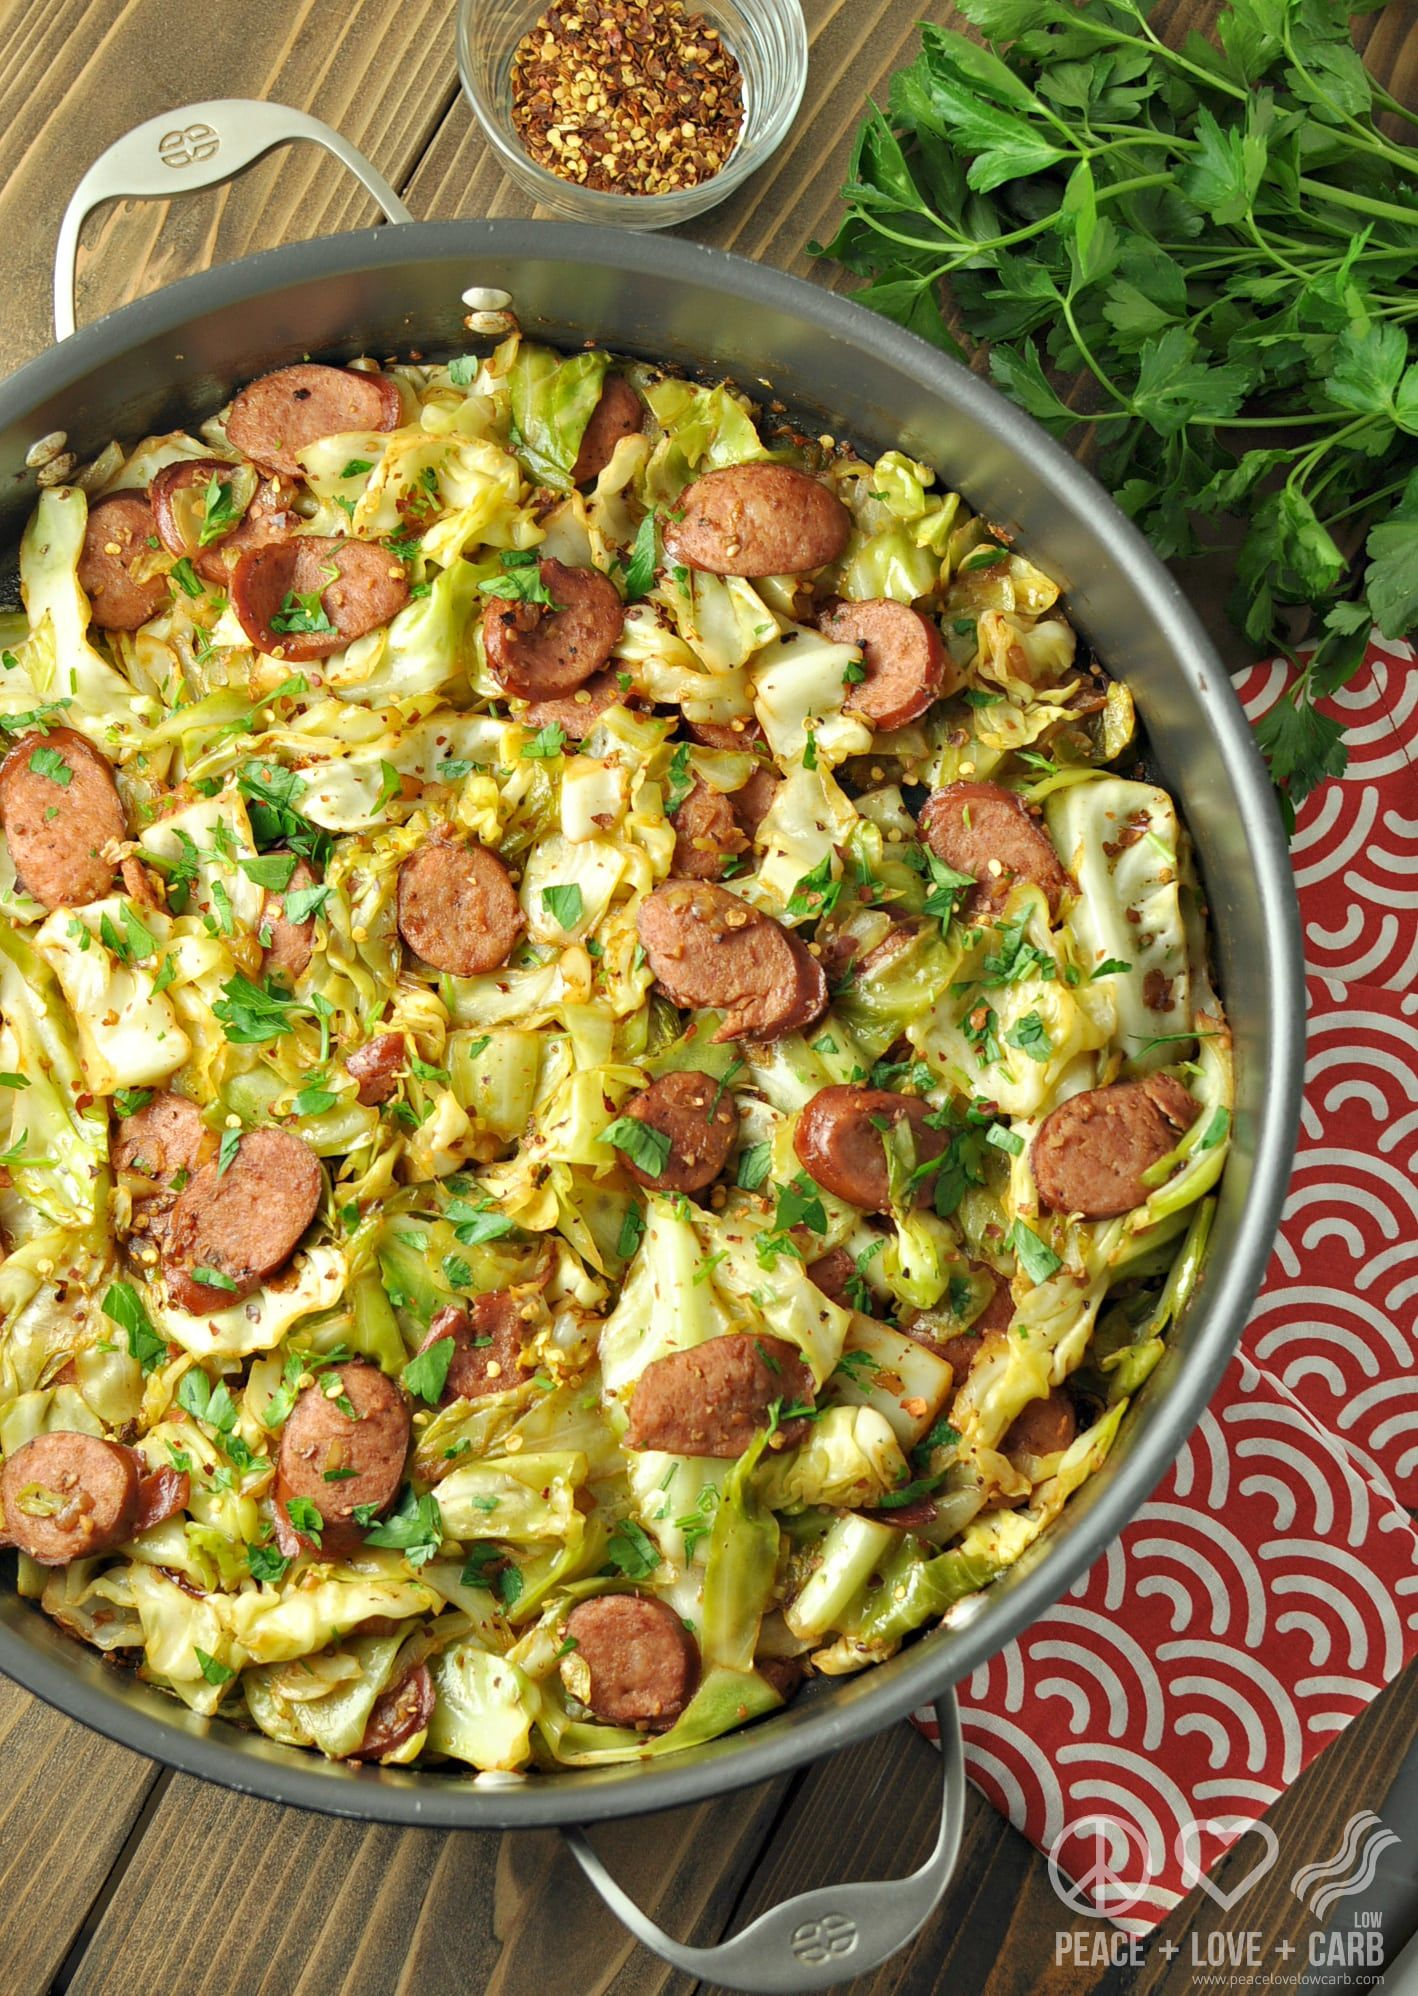 Fried Cabbage with Kielbasa – Low Carb, Gluten Free